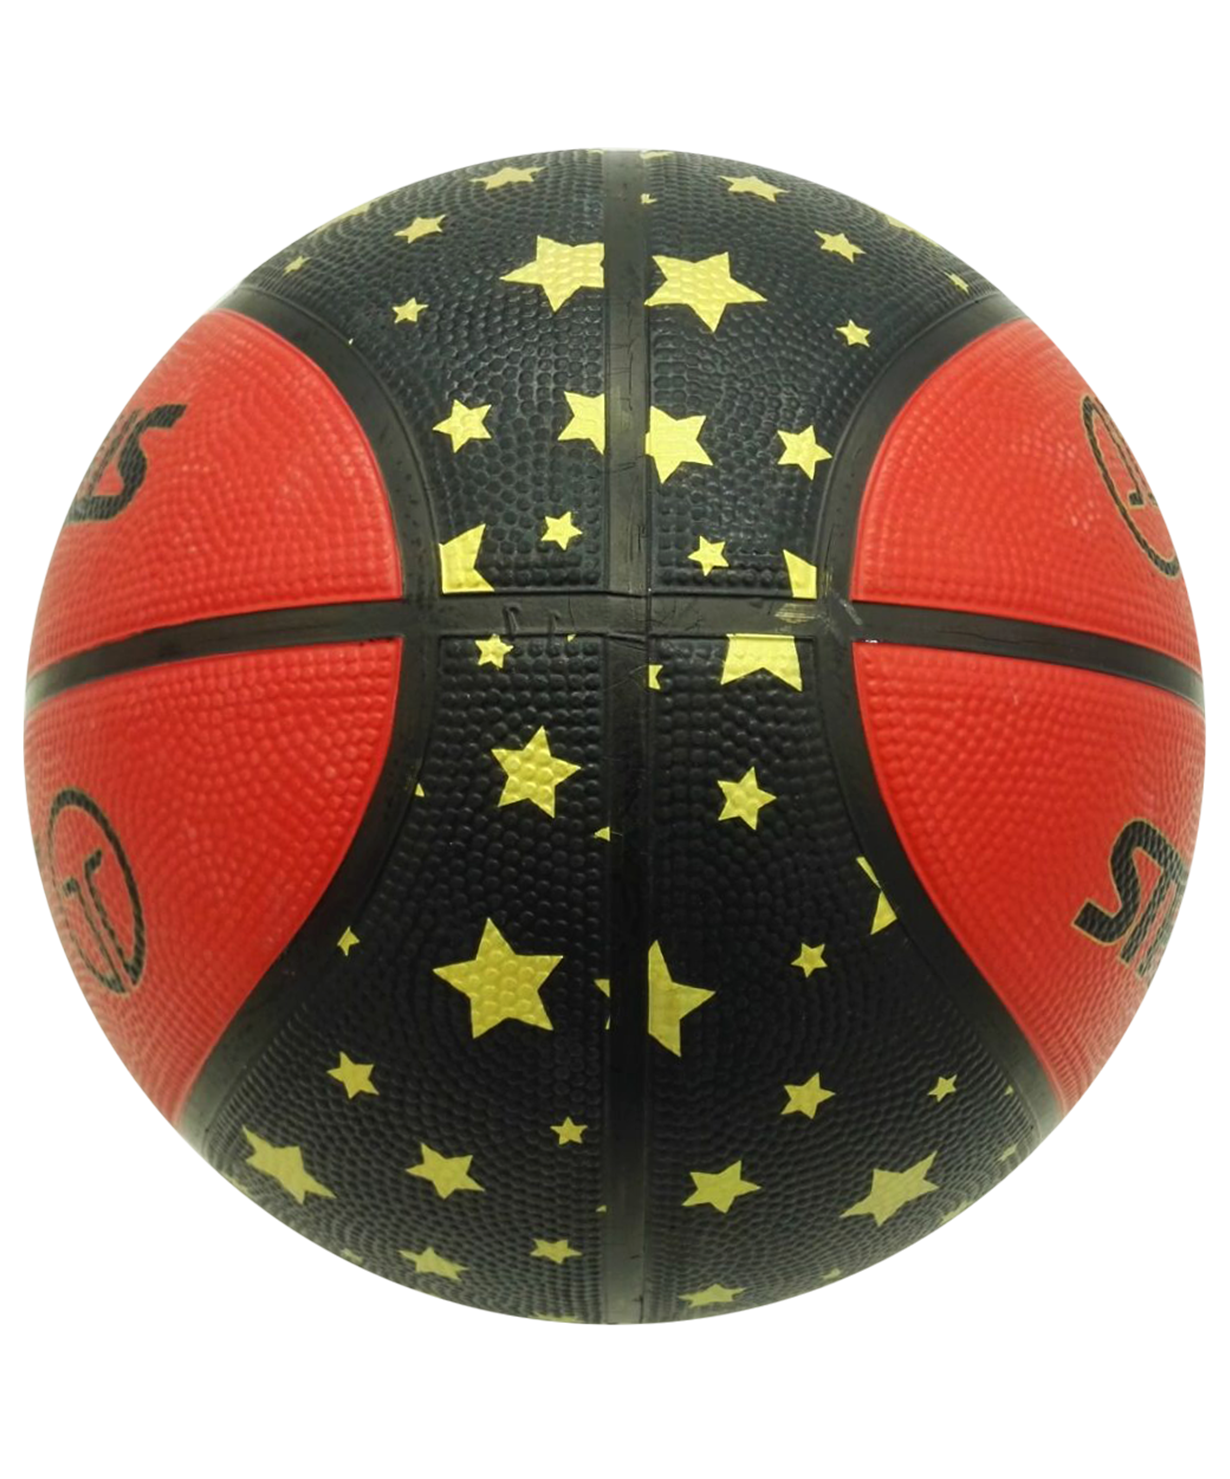 myach-basketbolnyj-street-star-7